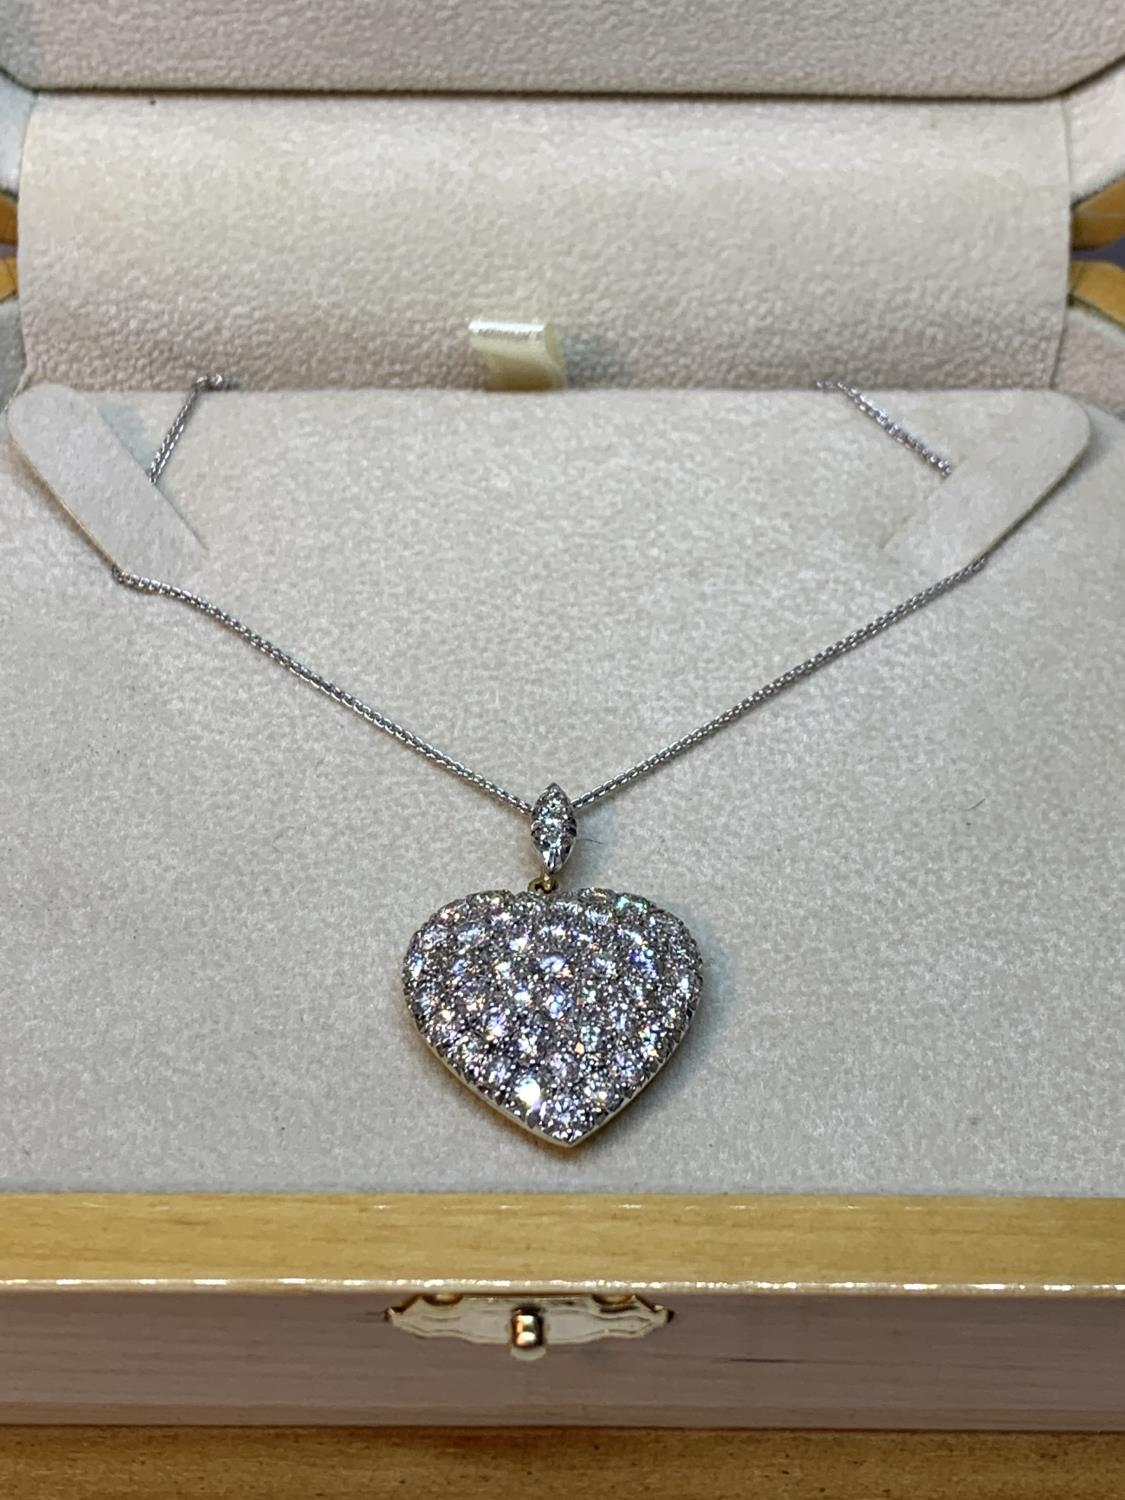 A 15 CARAT WHITE AND YELLOW GOLD LARGE DIAMOND ENCRUSTED HEART PENDANT WITH CHAIN LENGTH 44CM IN A